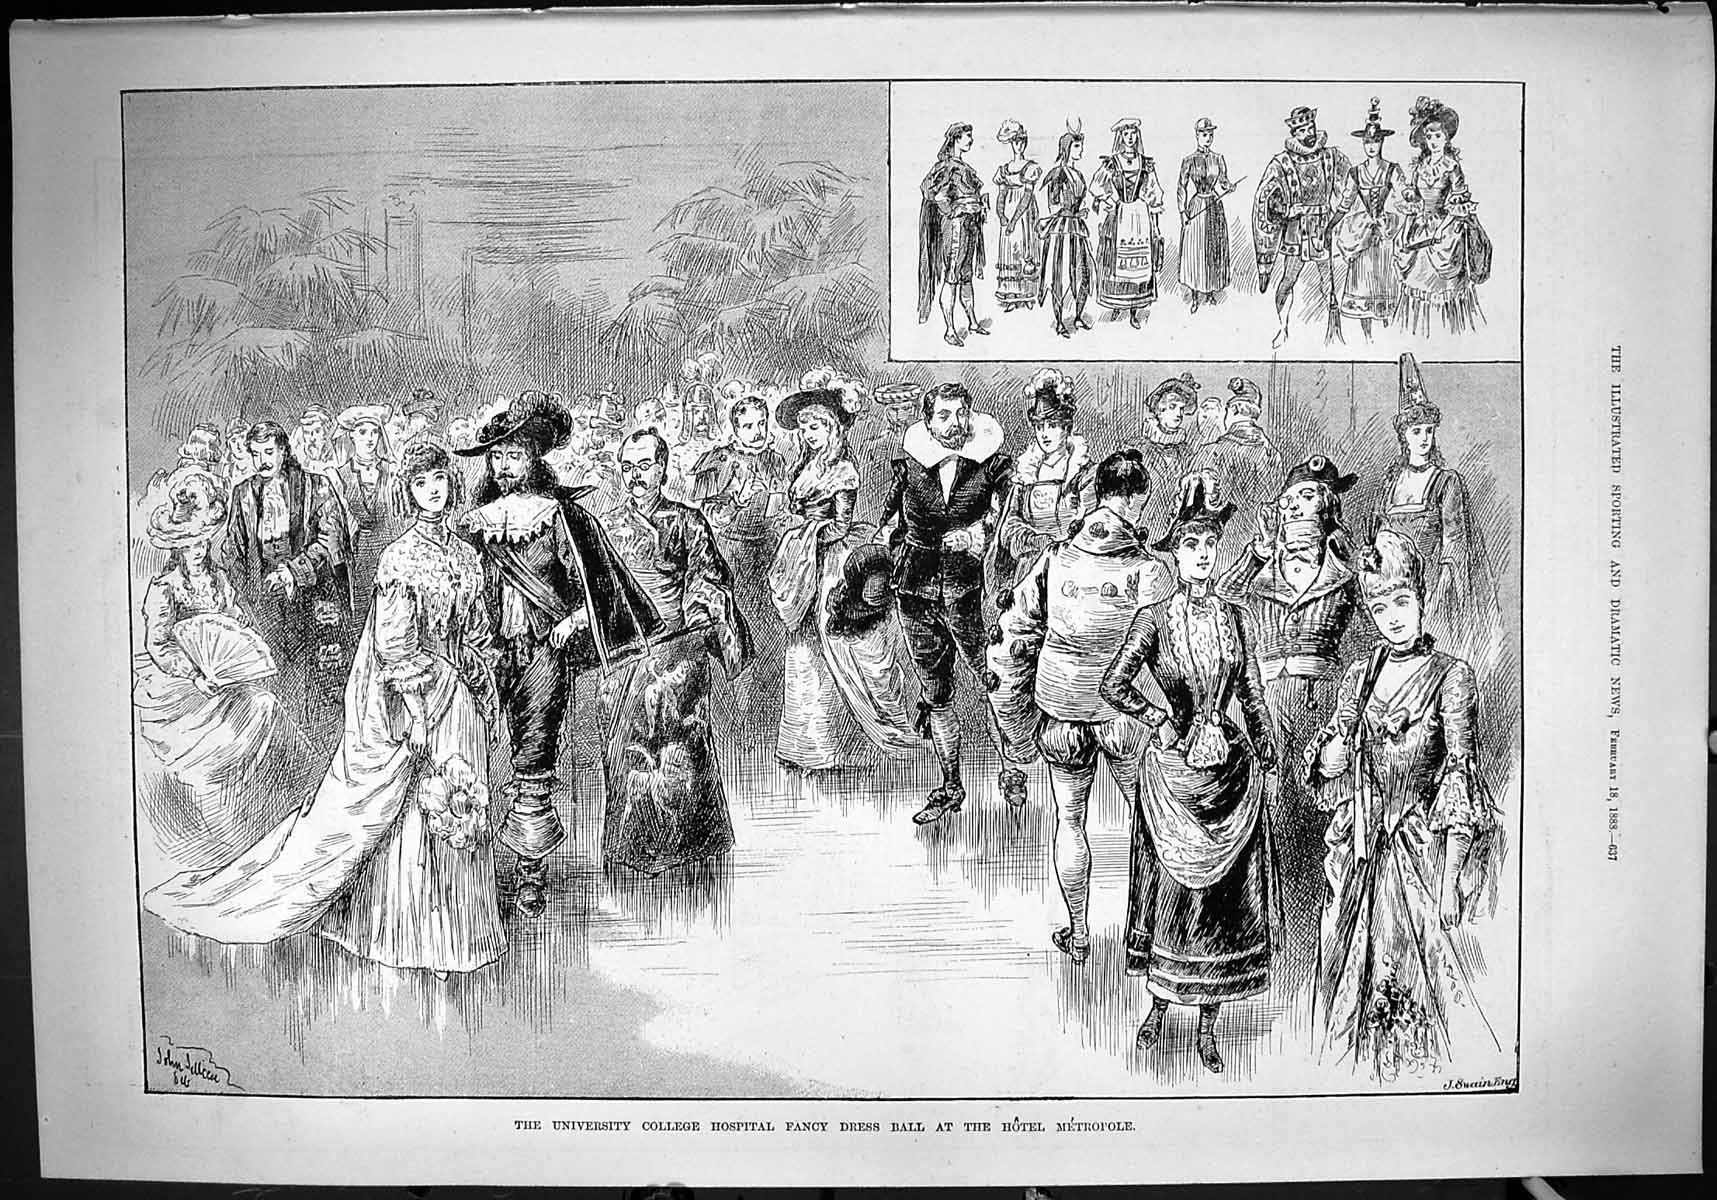 [Print 1888 University College Hospital Fancy Dress Ball Hotel Metropole 637J428 Old Original]